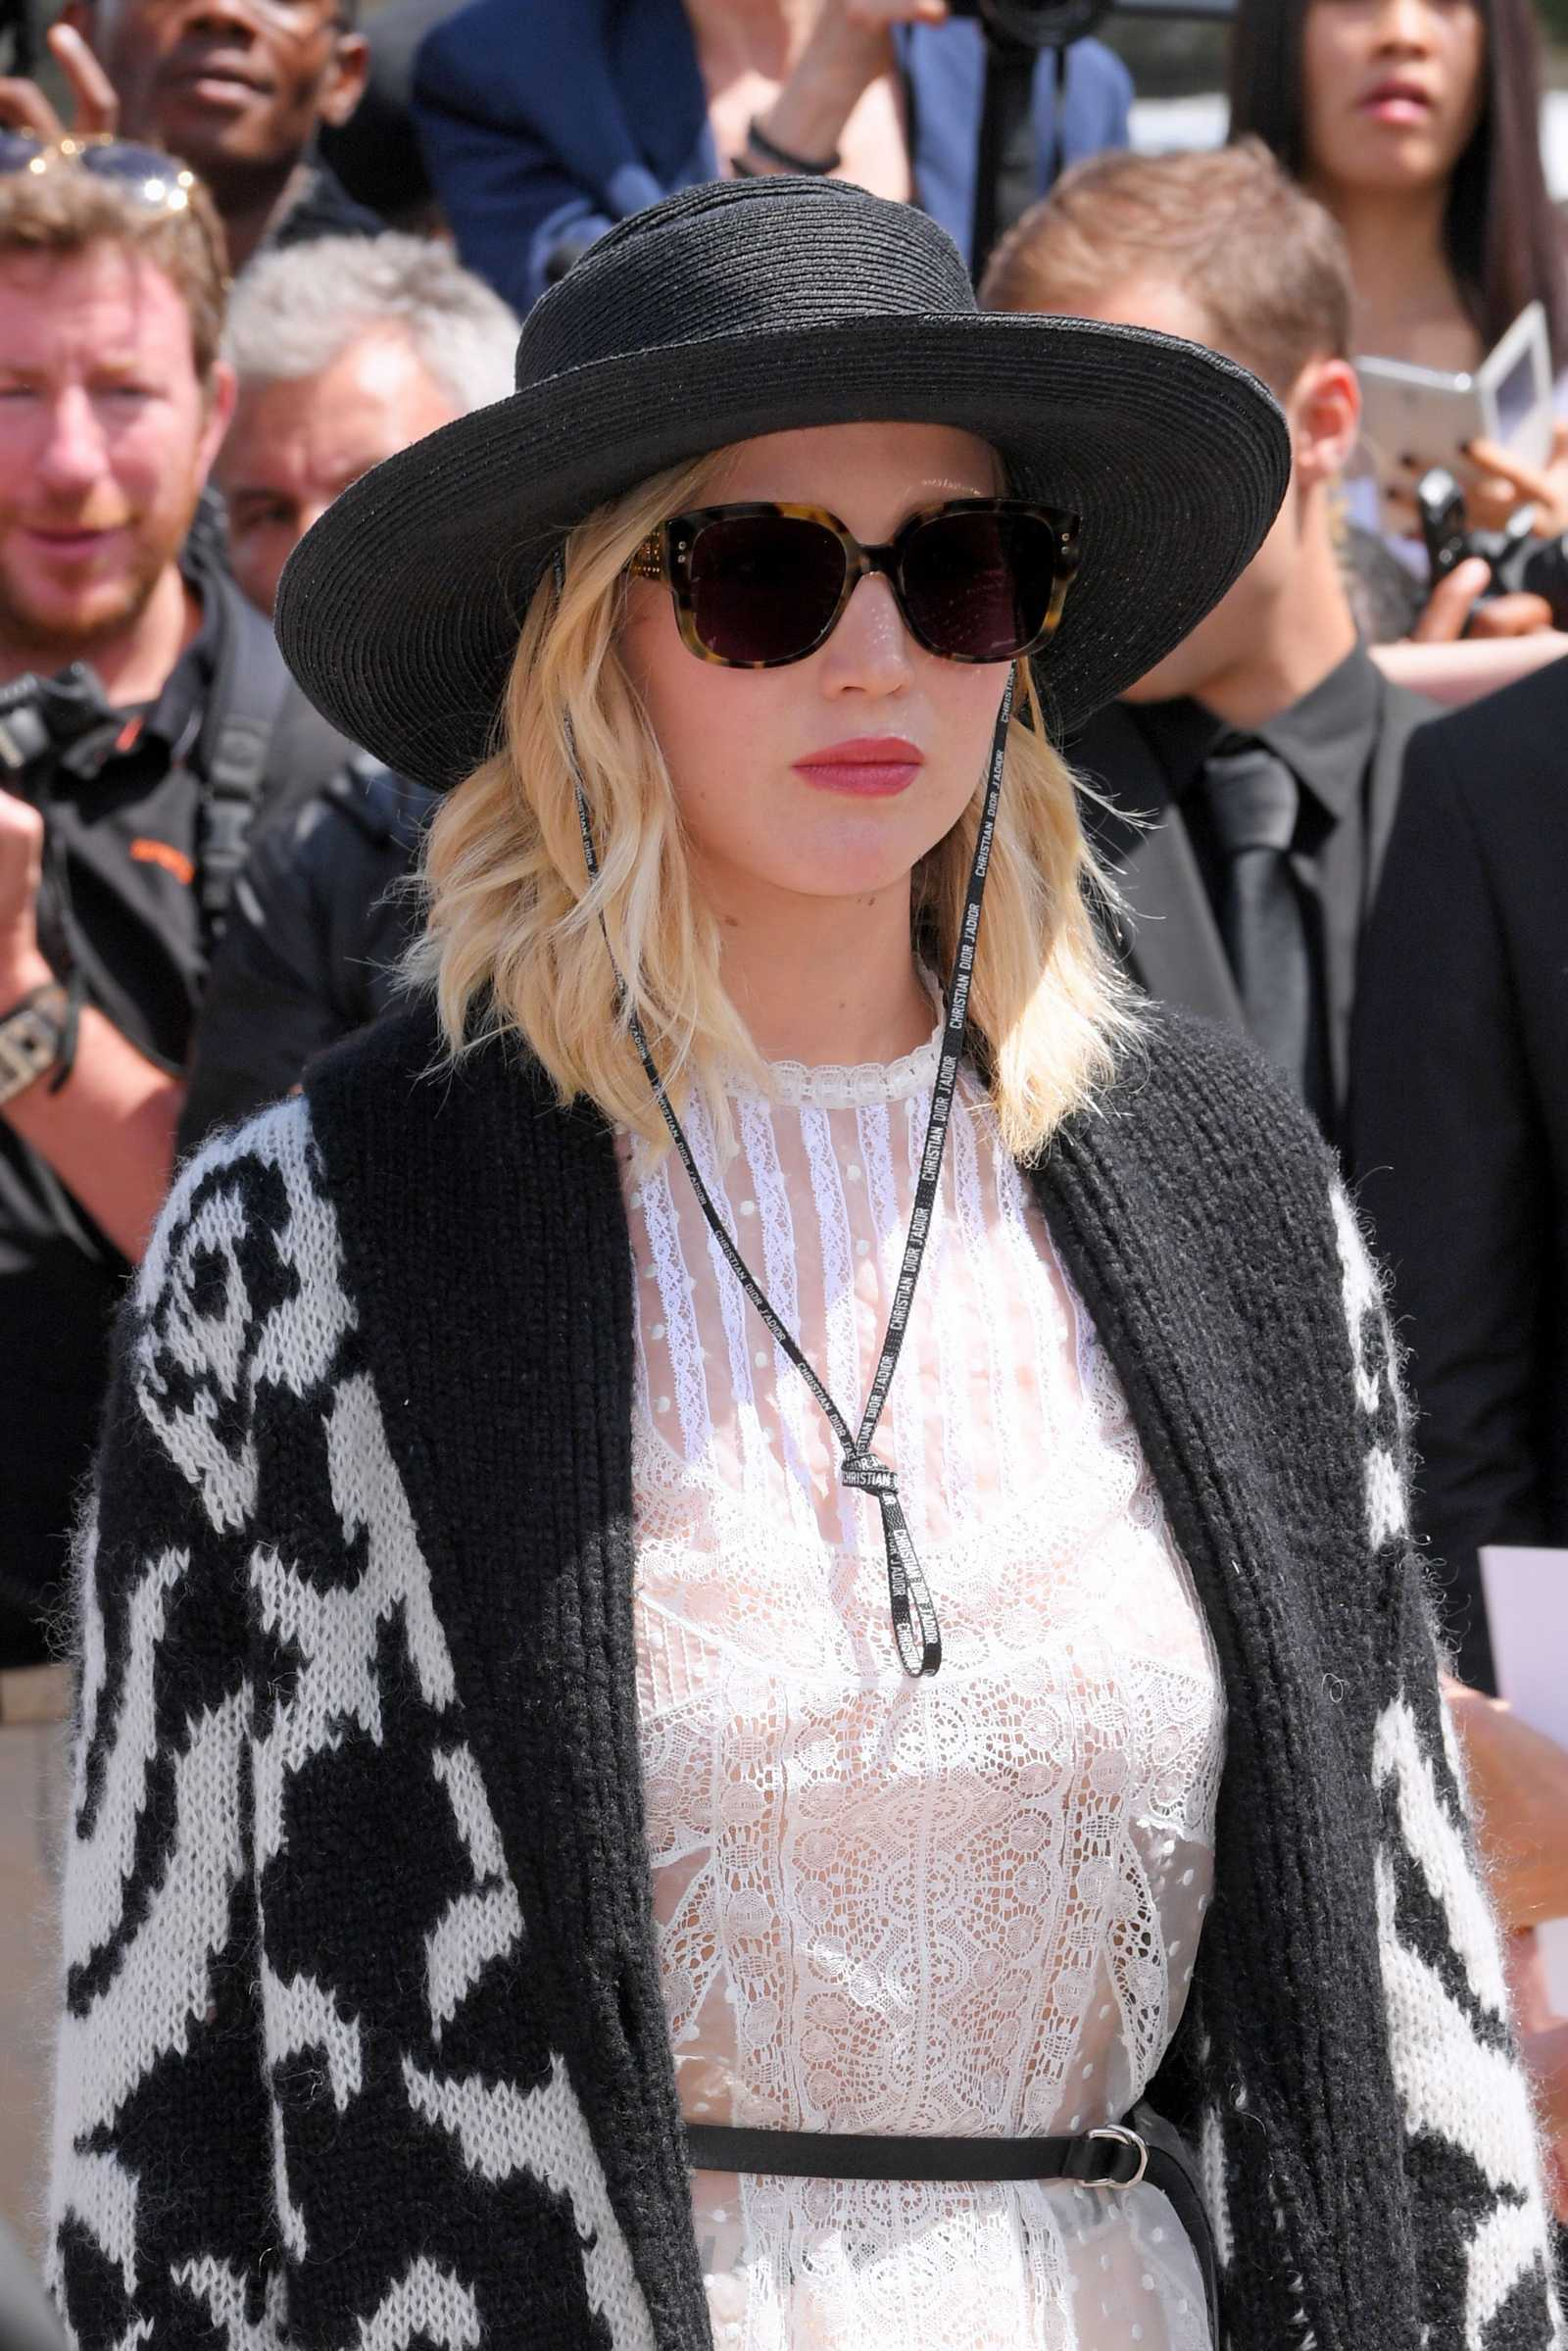 http://jenniferlawrencedaily.com/gallery/albums/userpics/10001/Jennifer_Lawrence_-_Haute_Couture_Fashion_Week_Christian_Dior_Fall_Winter_2017_in_Paris_on_July_3-06.jpg